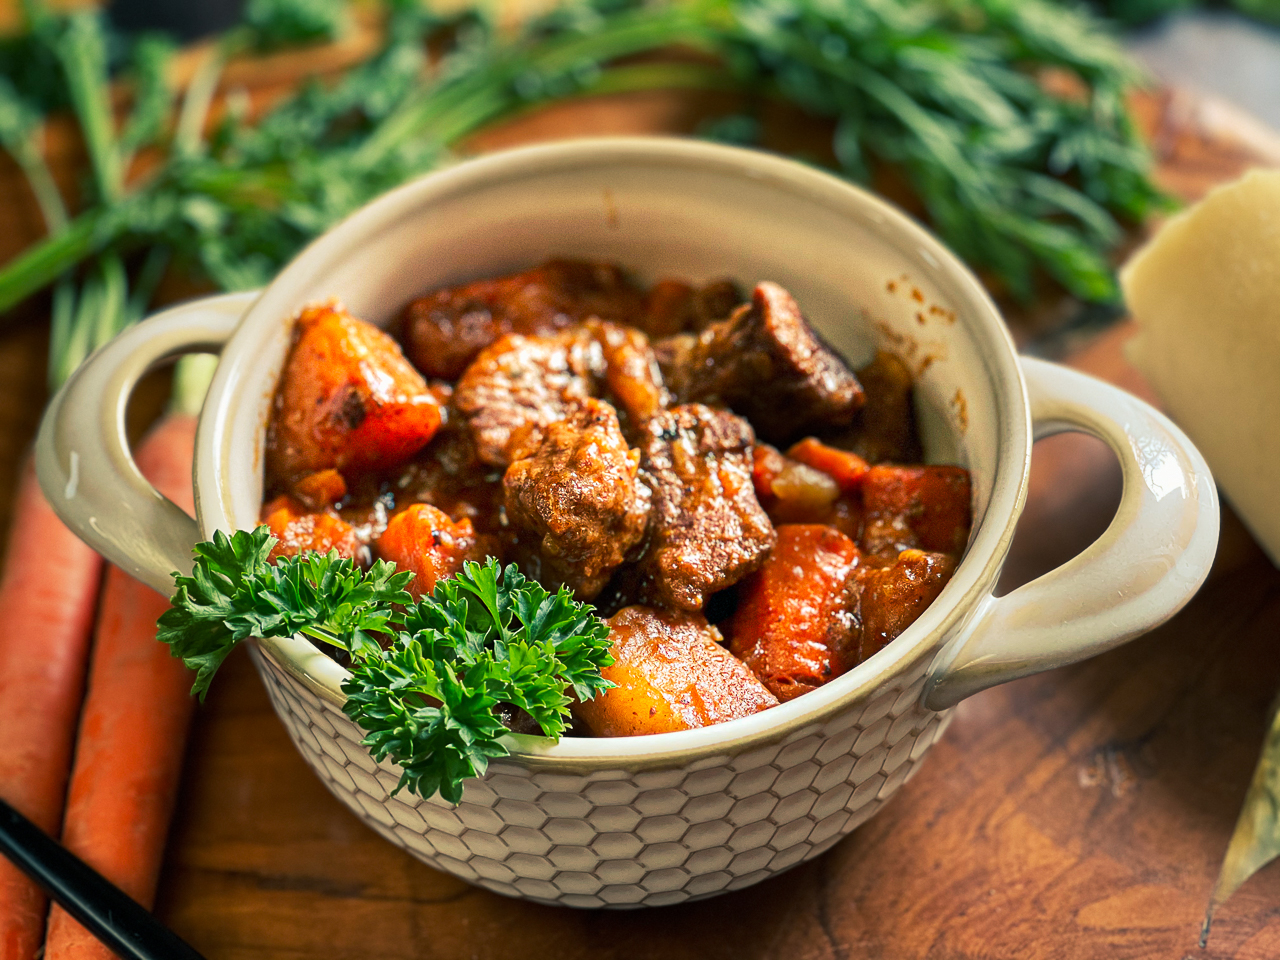 Beef stew in a bowl surrounded by vegetables